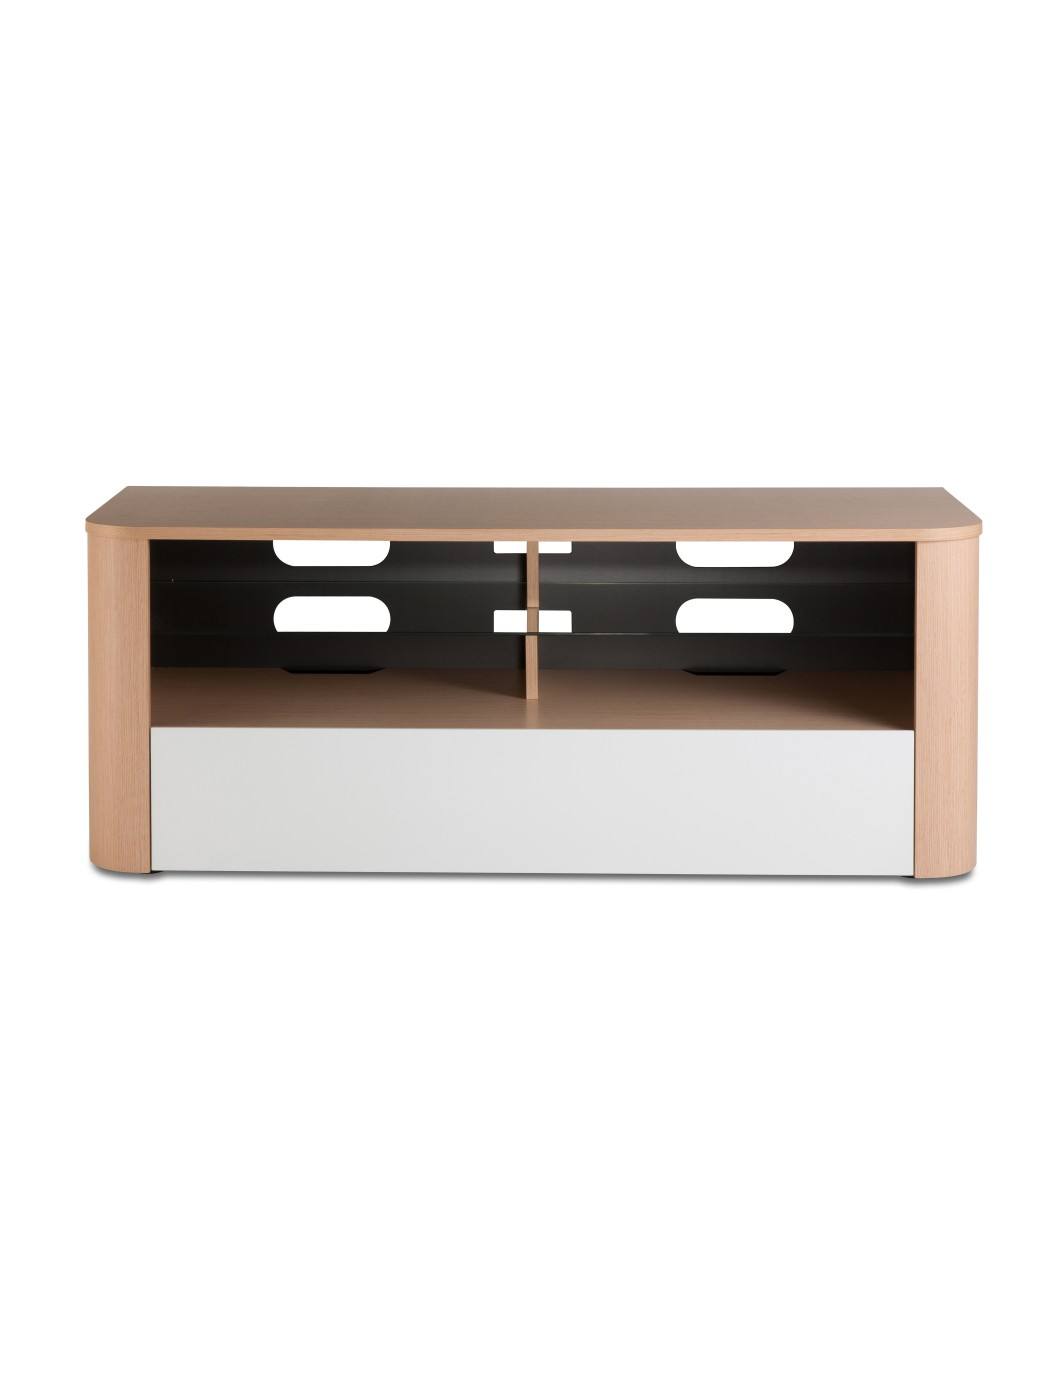 Alphason Hugo TV Stand ADH1260-WHI in Light Oak and White with Bracket